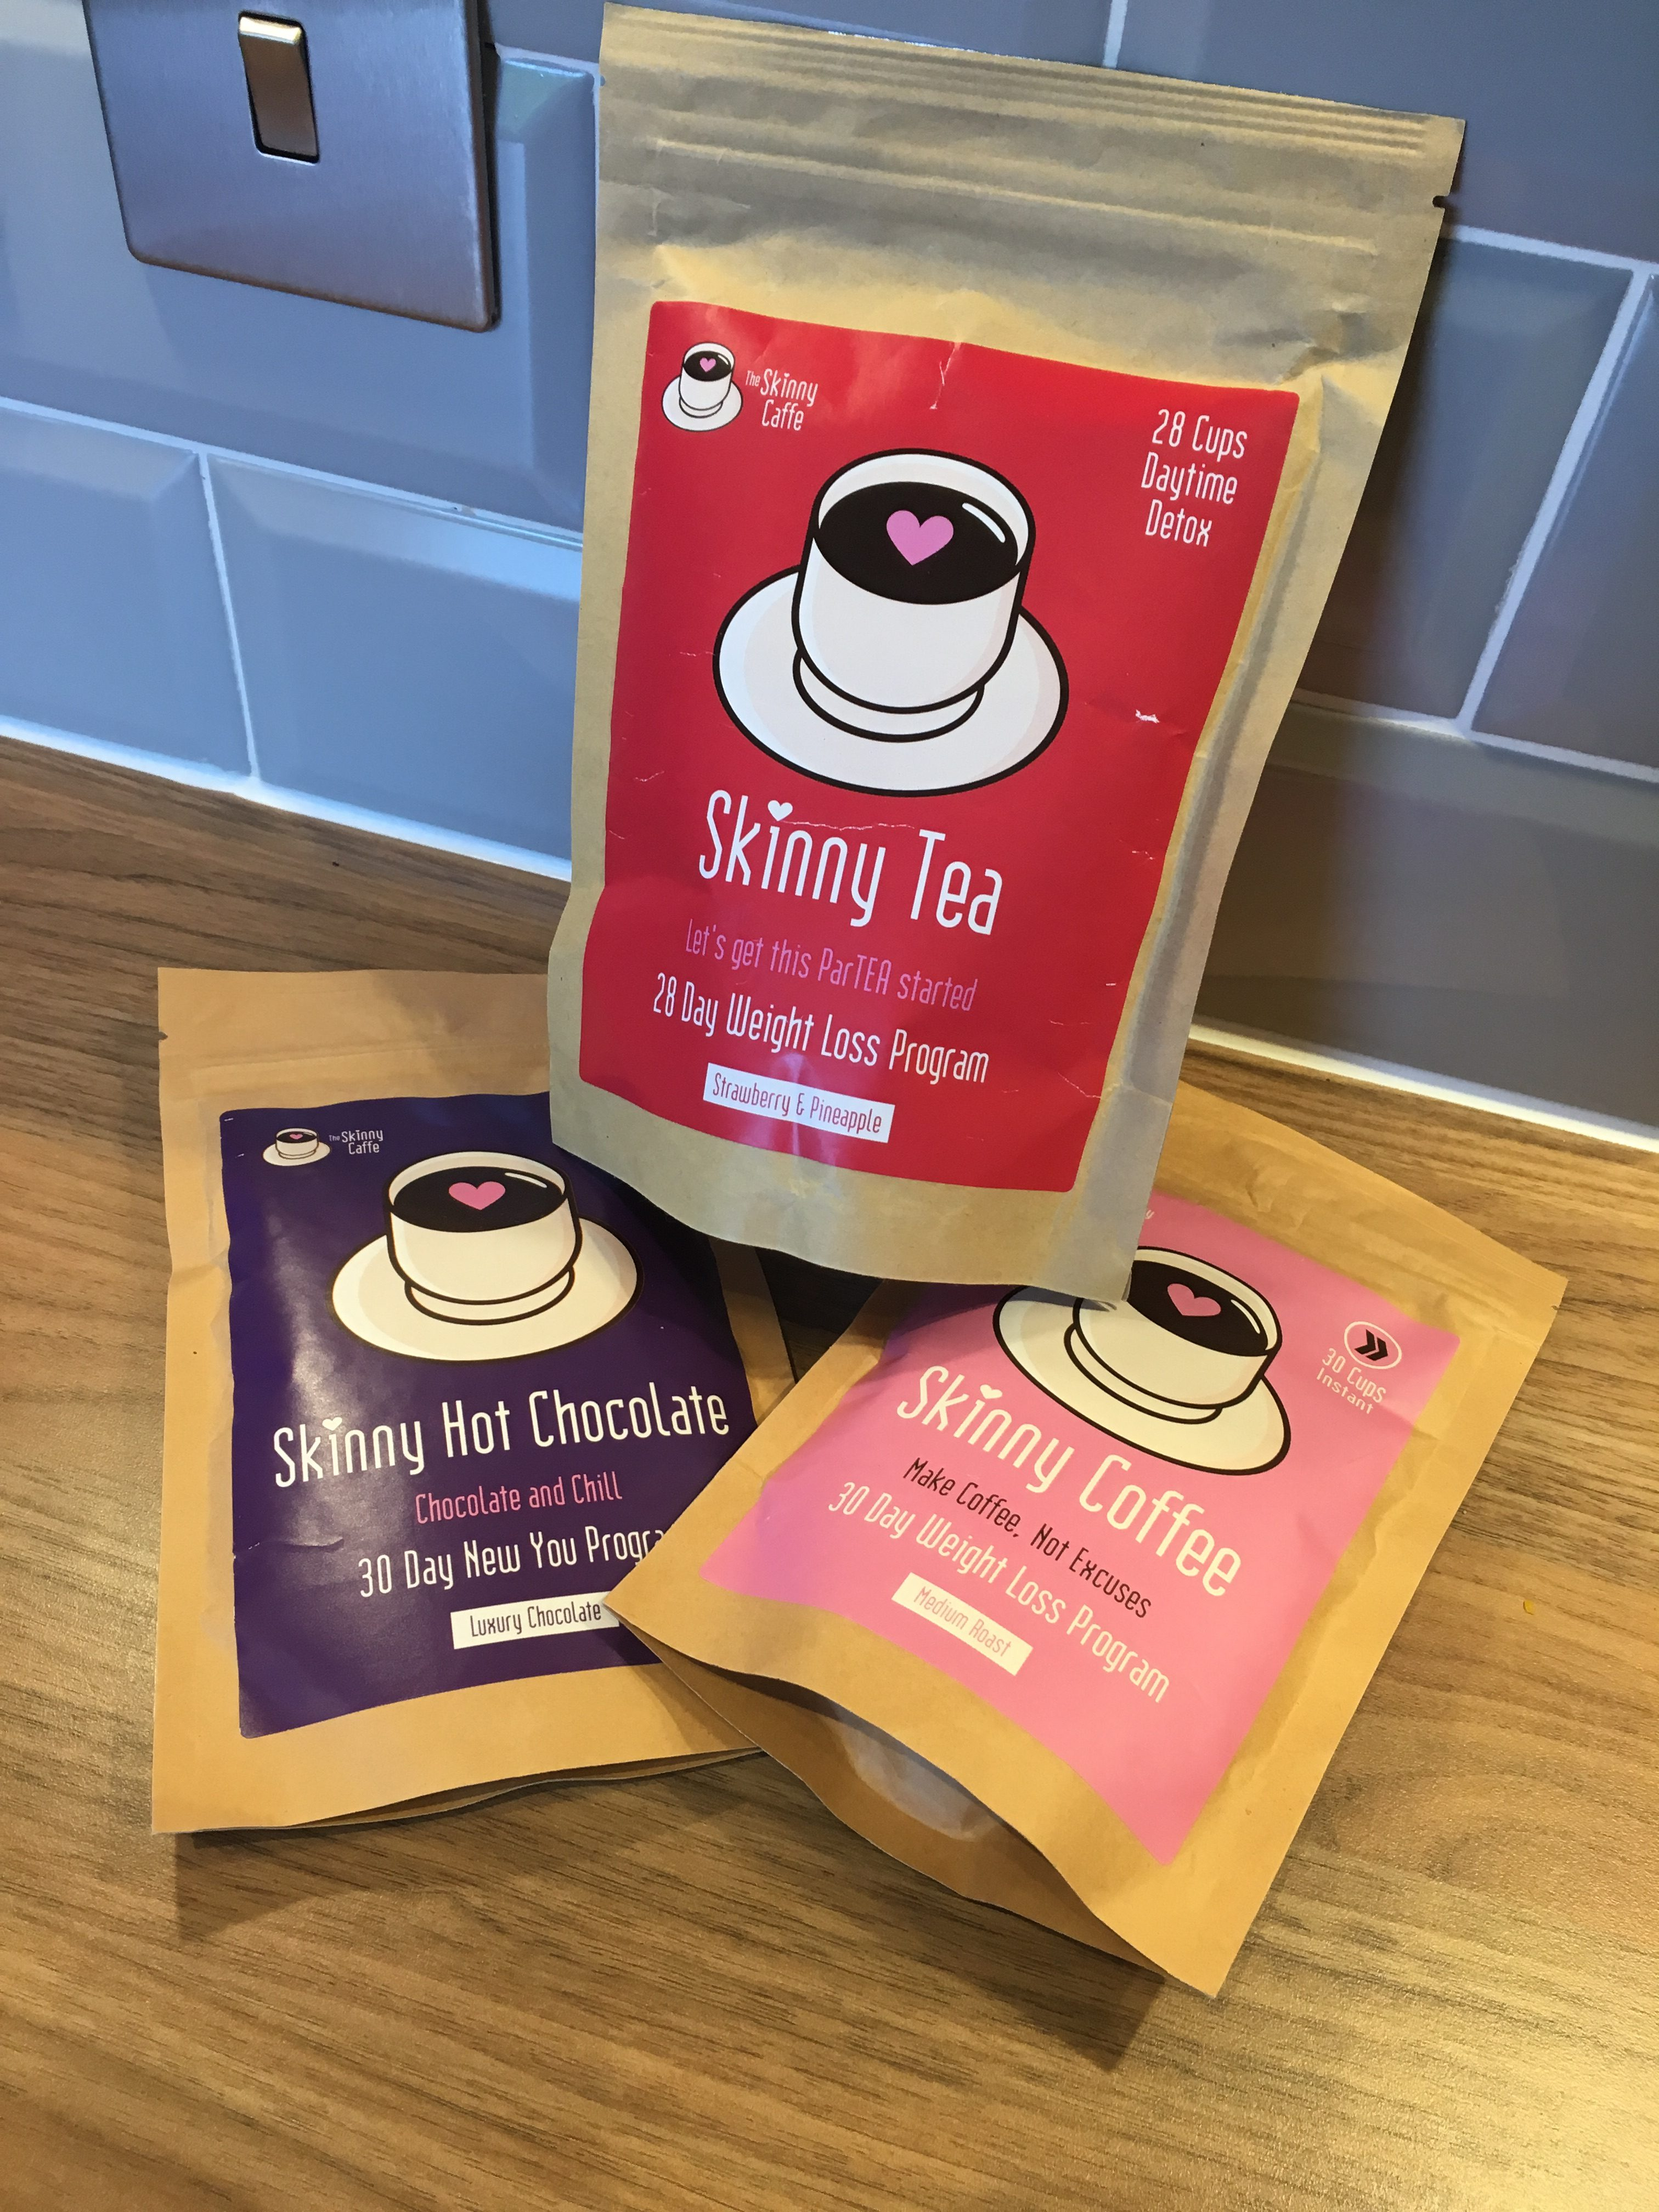 The Skinny Caffe My Review Fatgirlskinnynet Slimming